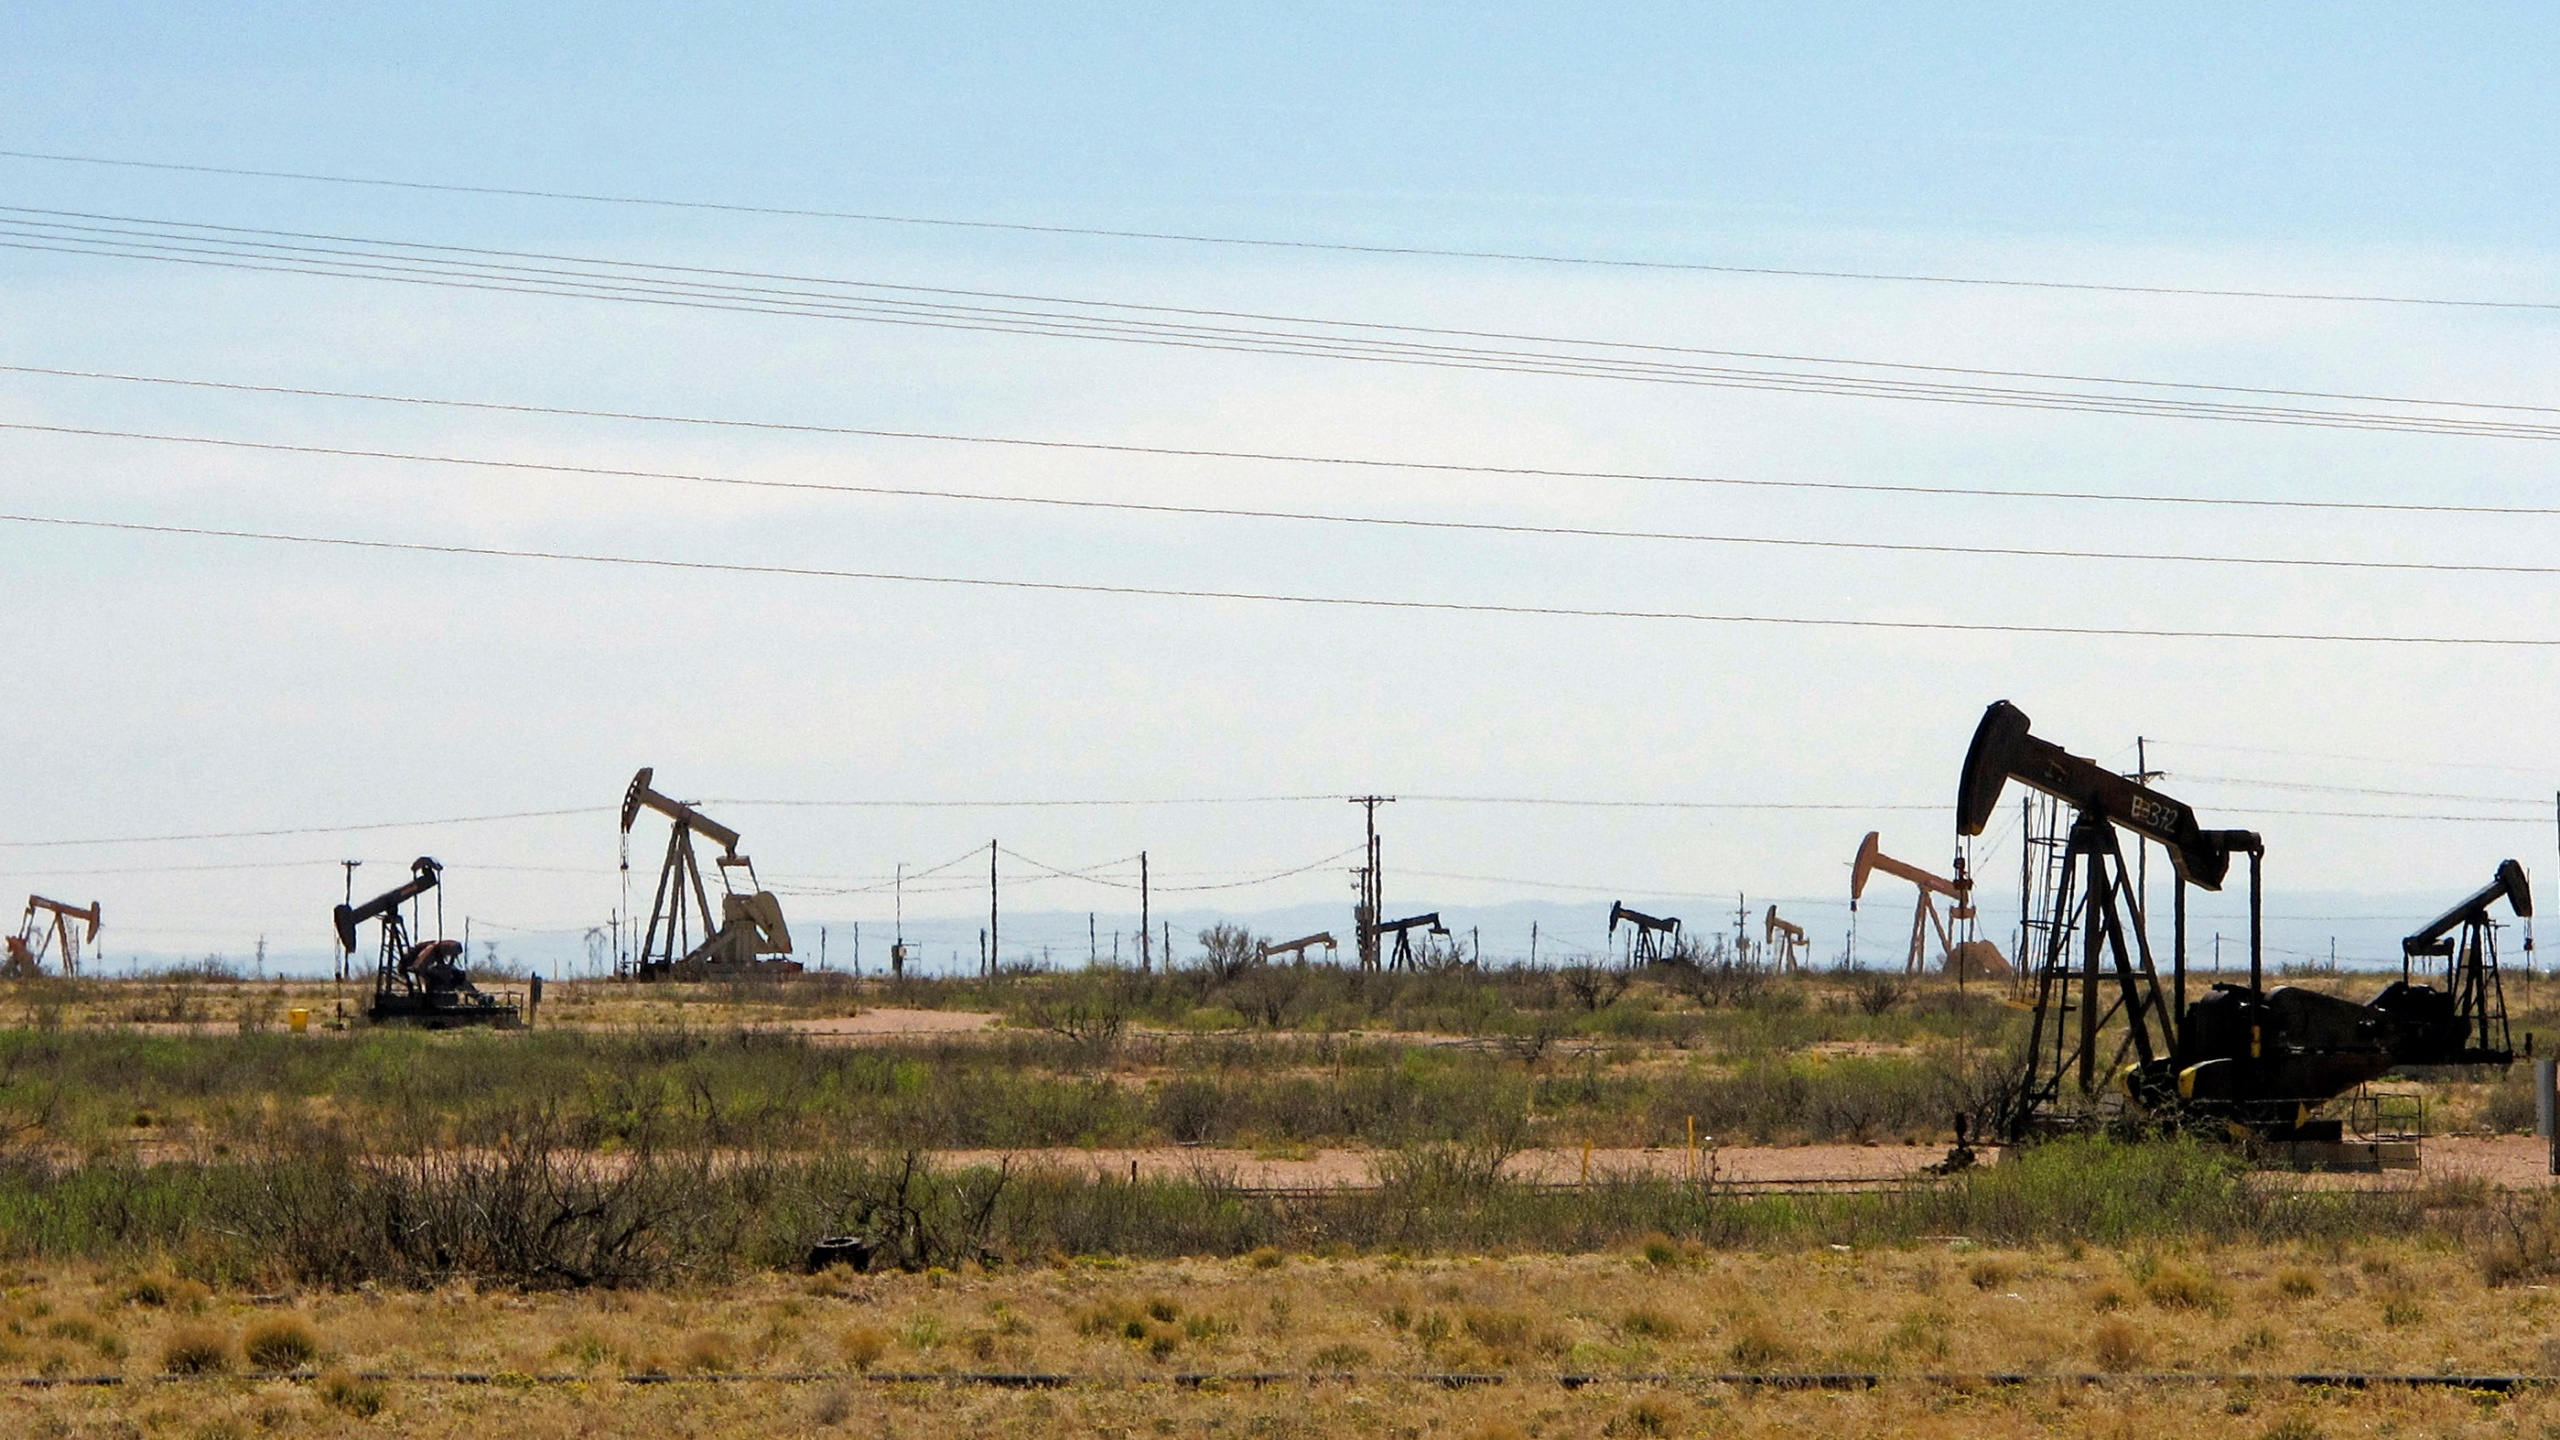 In this April 9, 2014, file photo, oil rigs stand in the Loco Hills field on U.S. Highway 82 in Eddy County near Artesia, N.M., one of the most active regions of the Permian Basin. President Joe Biden is set to announce a wide-ranging moratorium on new oil and gas leasing on U.S. lands, as his administration moves quickly to reverse Trump administration policies on energy and the environment and address climate change. (AP Photo/Jeri Clausing, File)